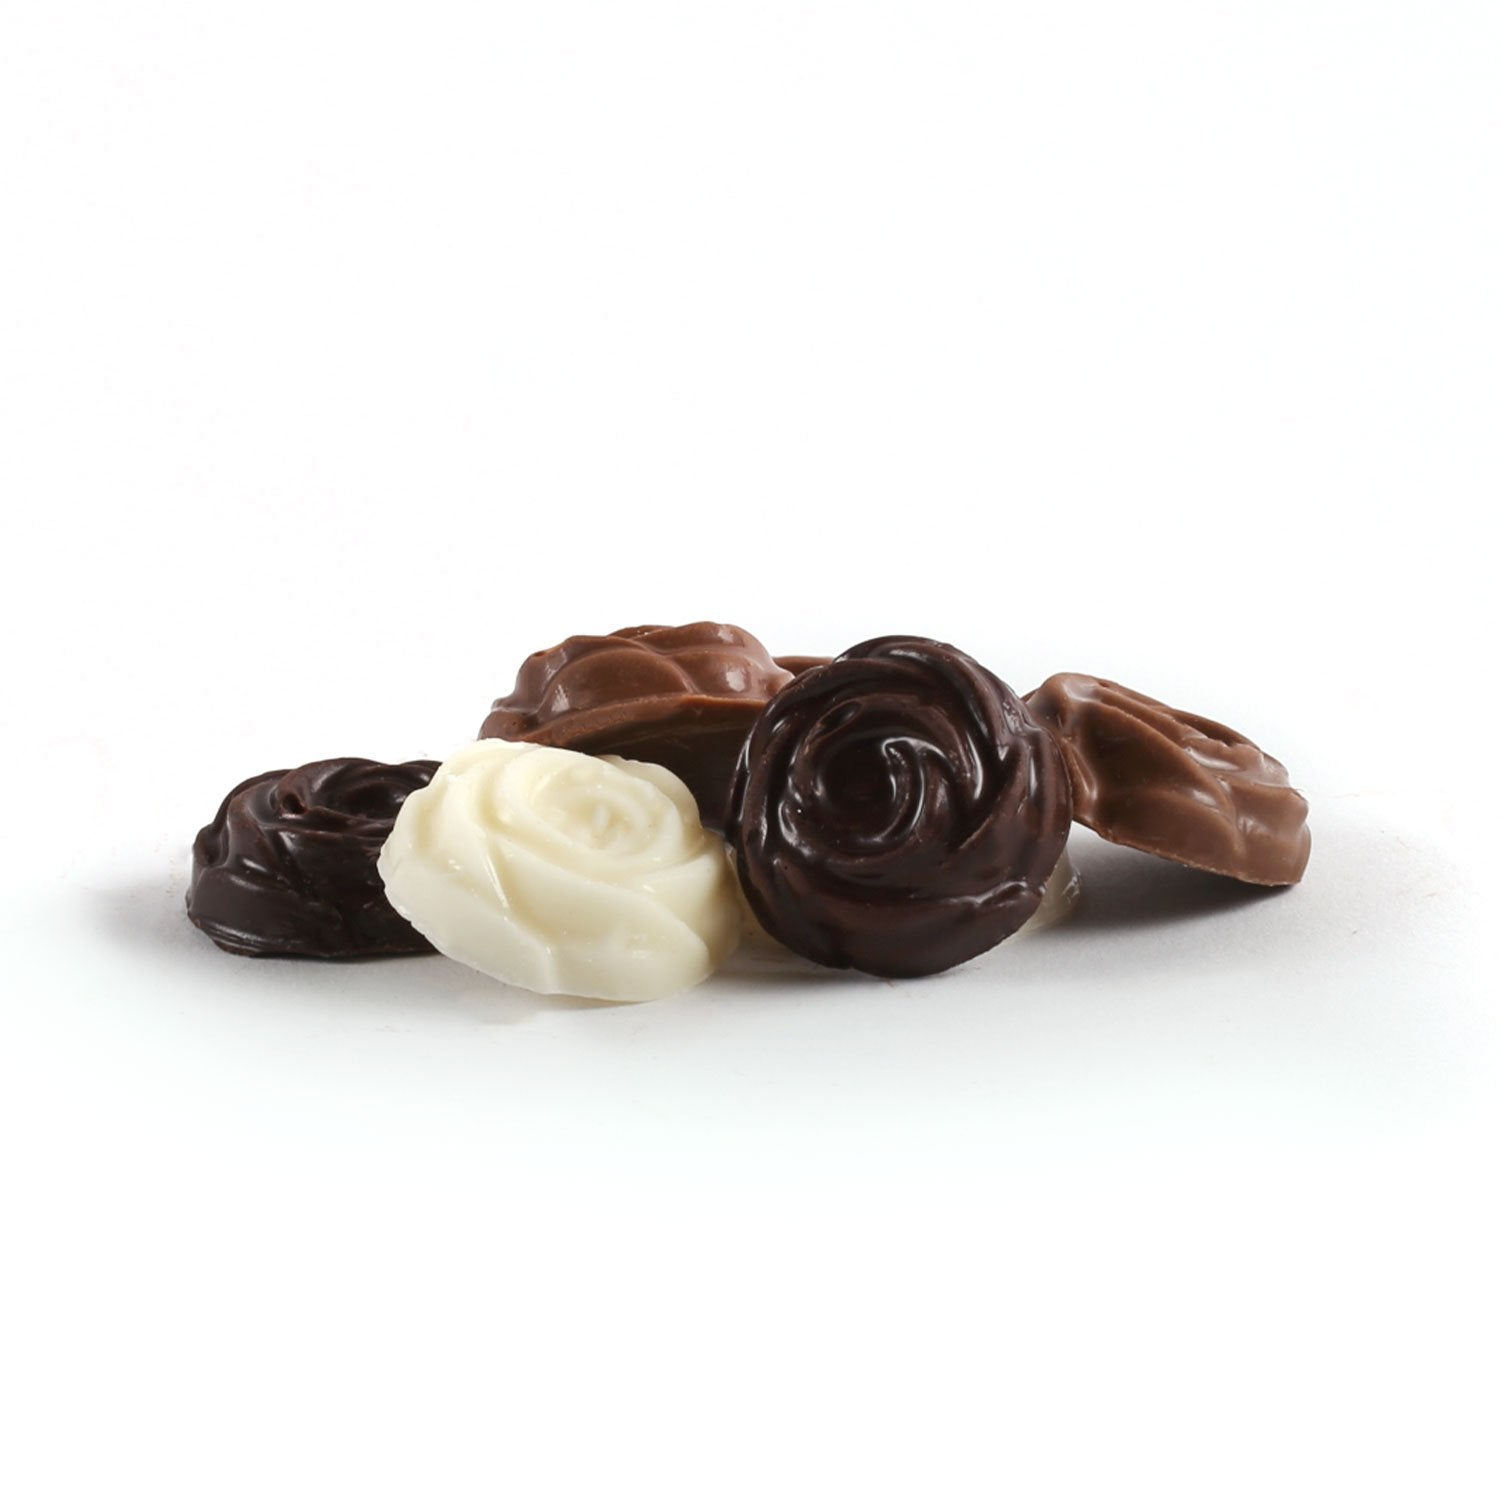 Product photo of assorted rosebuds. A dark, a milk and a white